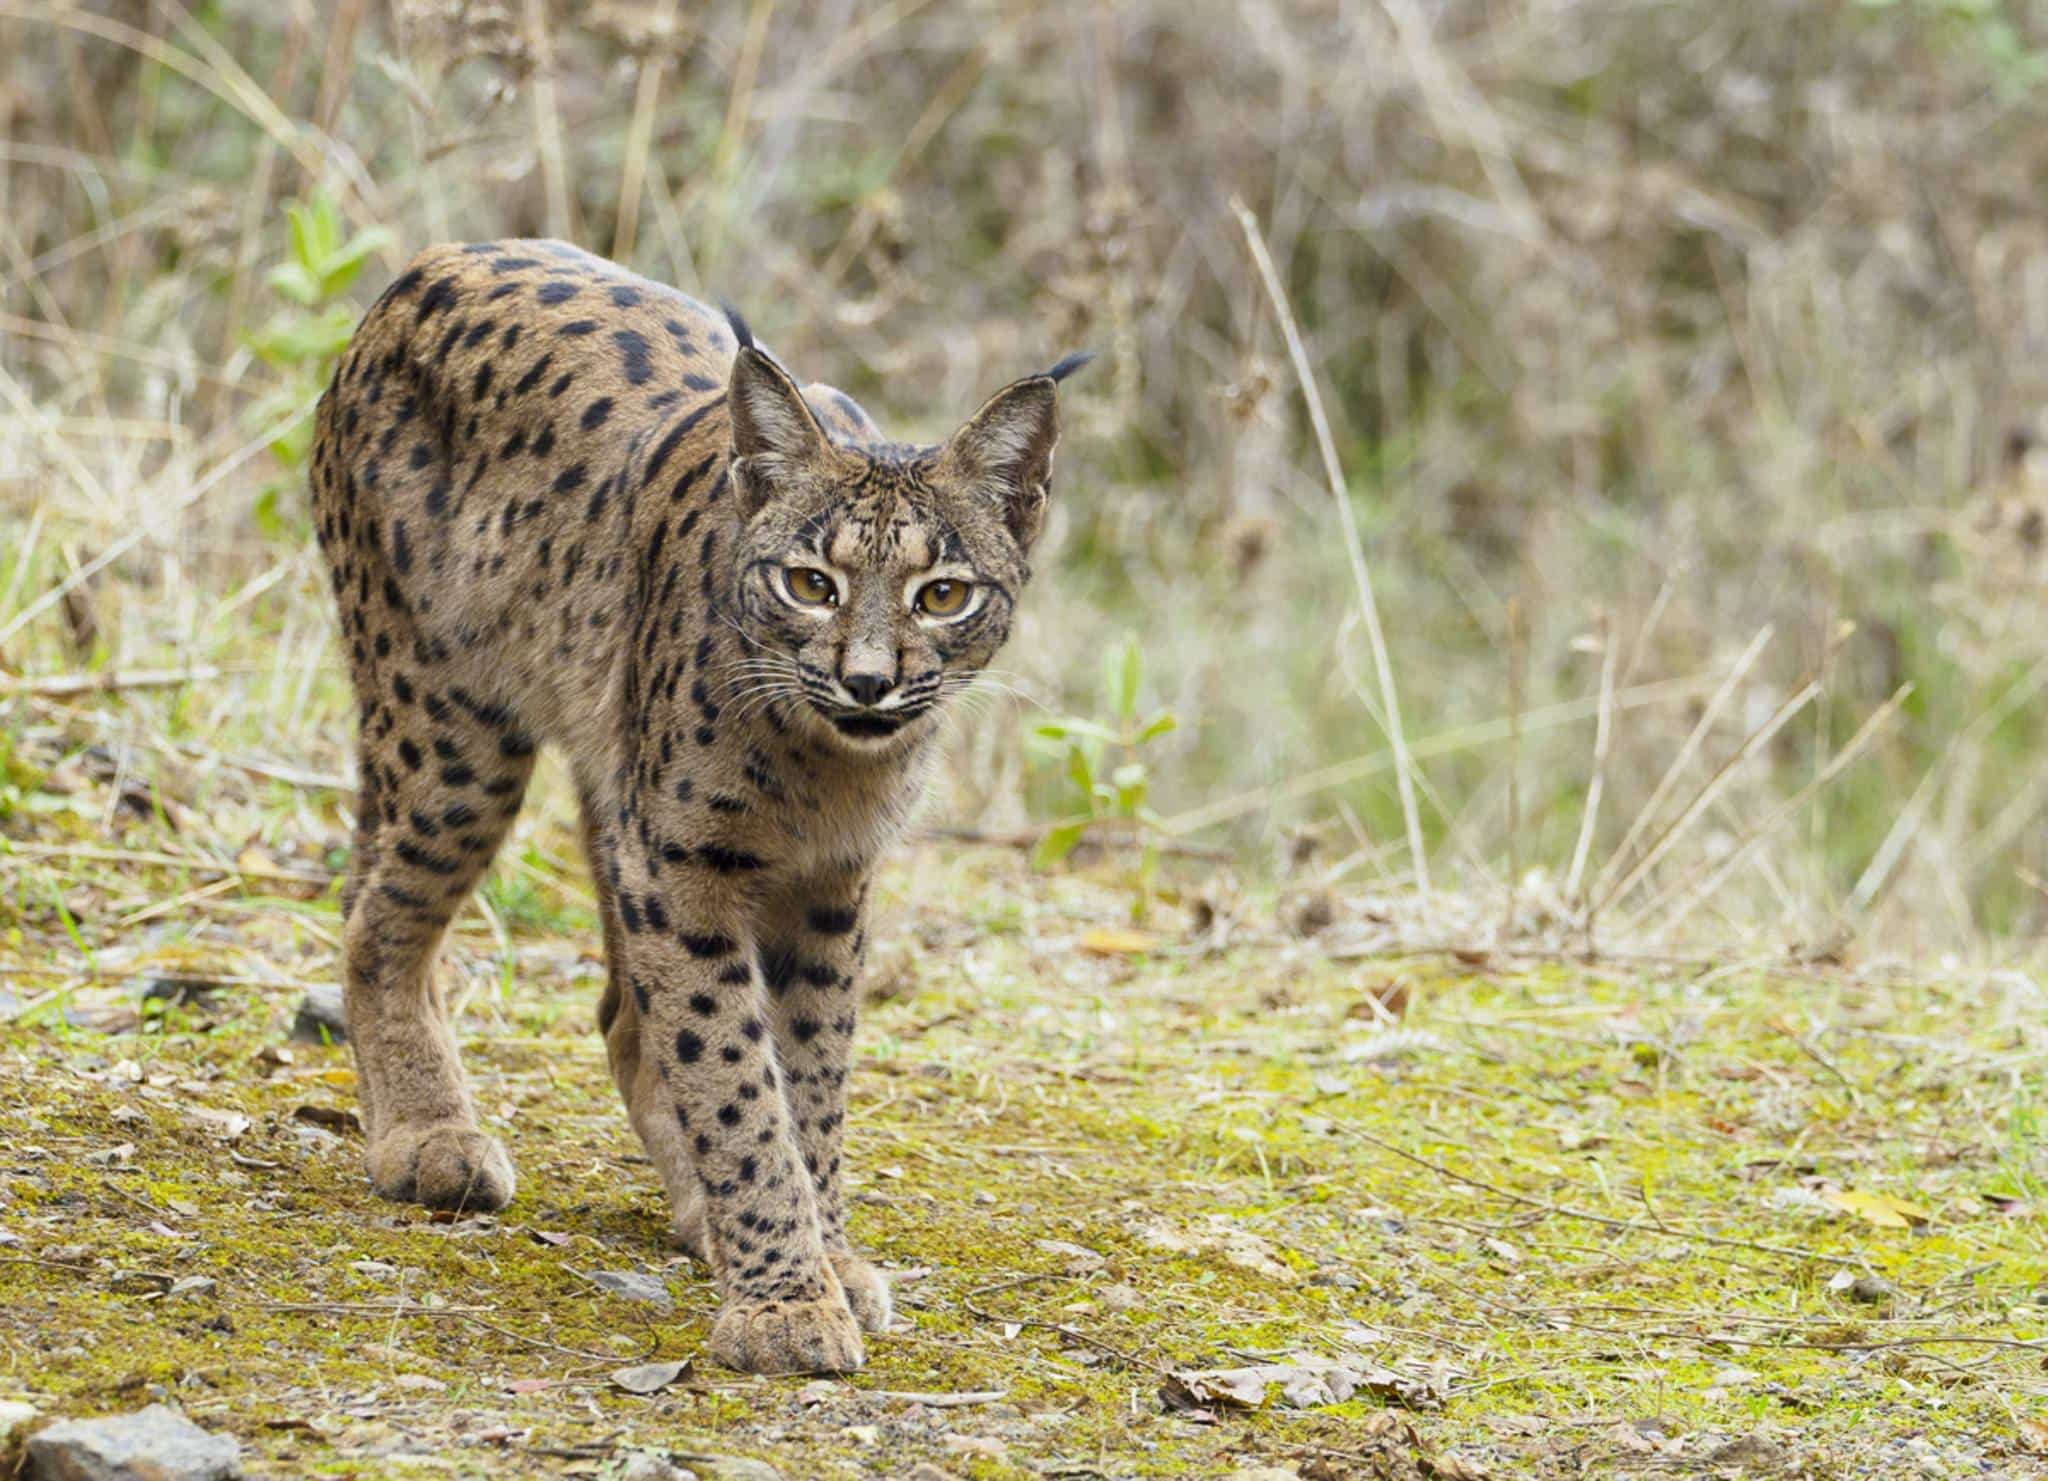 A solo Iberian lynx in the Sierra Morena region of Spain - photographed during the NaturesLens Wildcats Eagles Iberian Lynx of Spain Photography Holiday